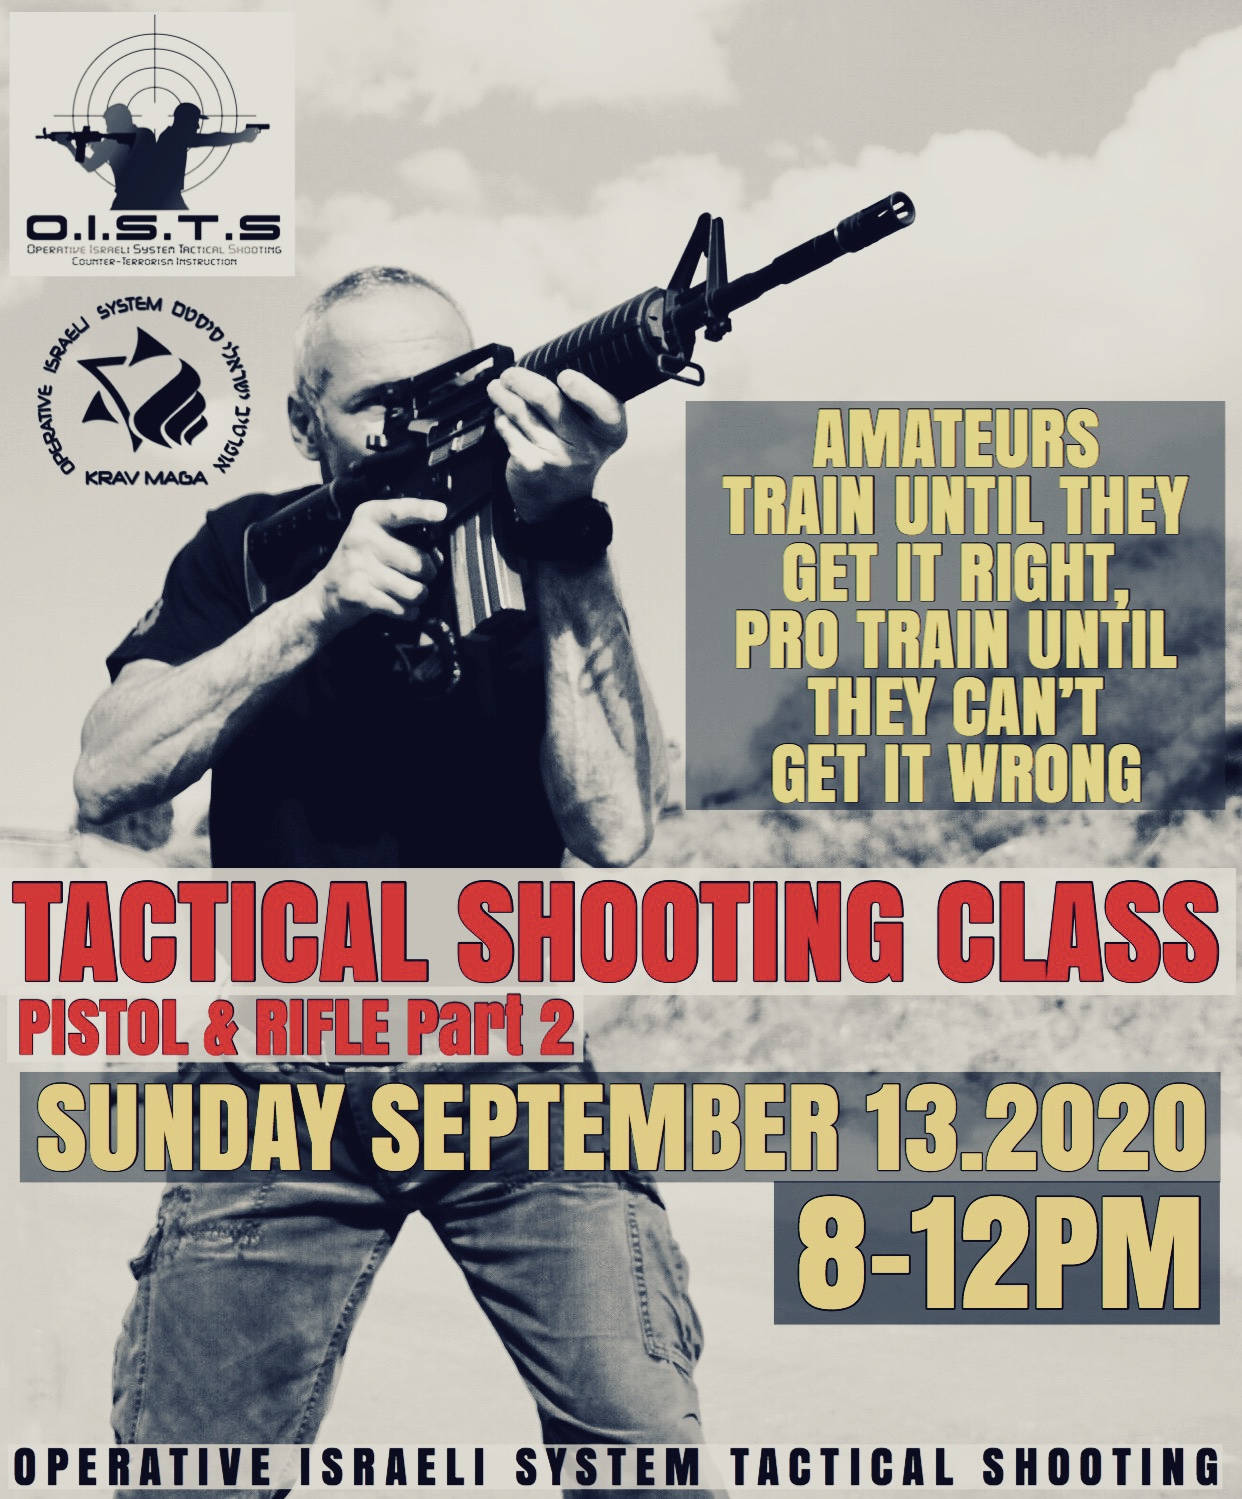 KRAV MAGA TACTICAL SHOOTING GROUP CLASS